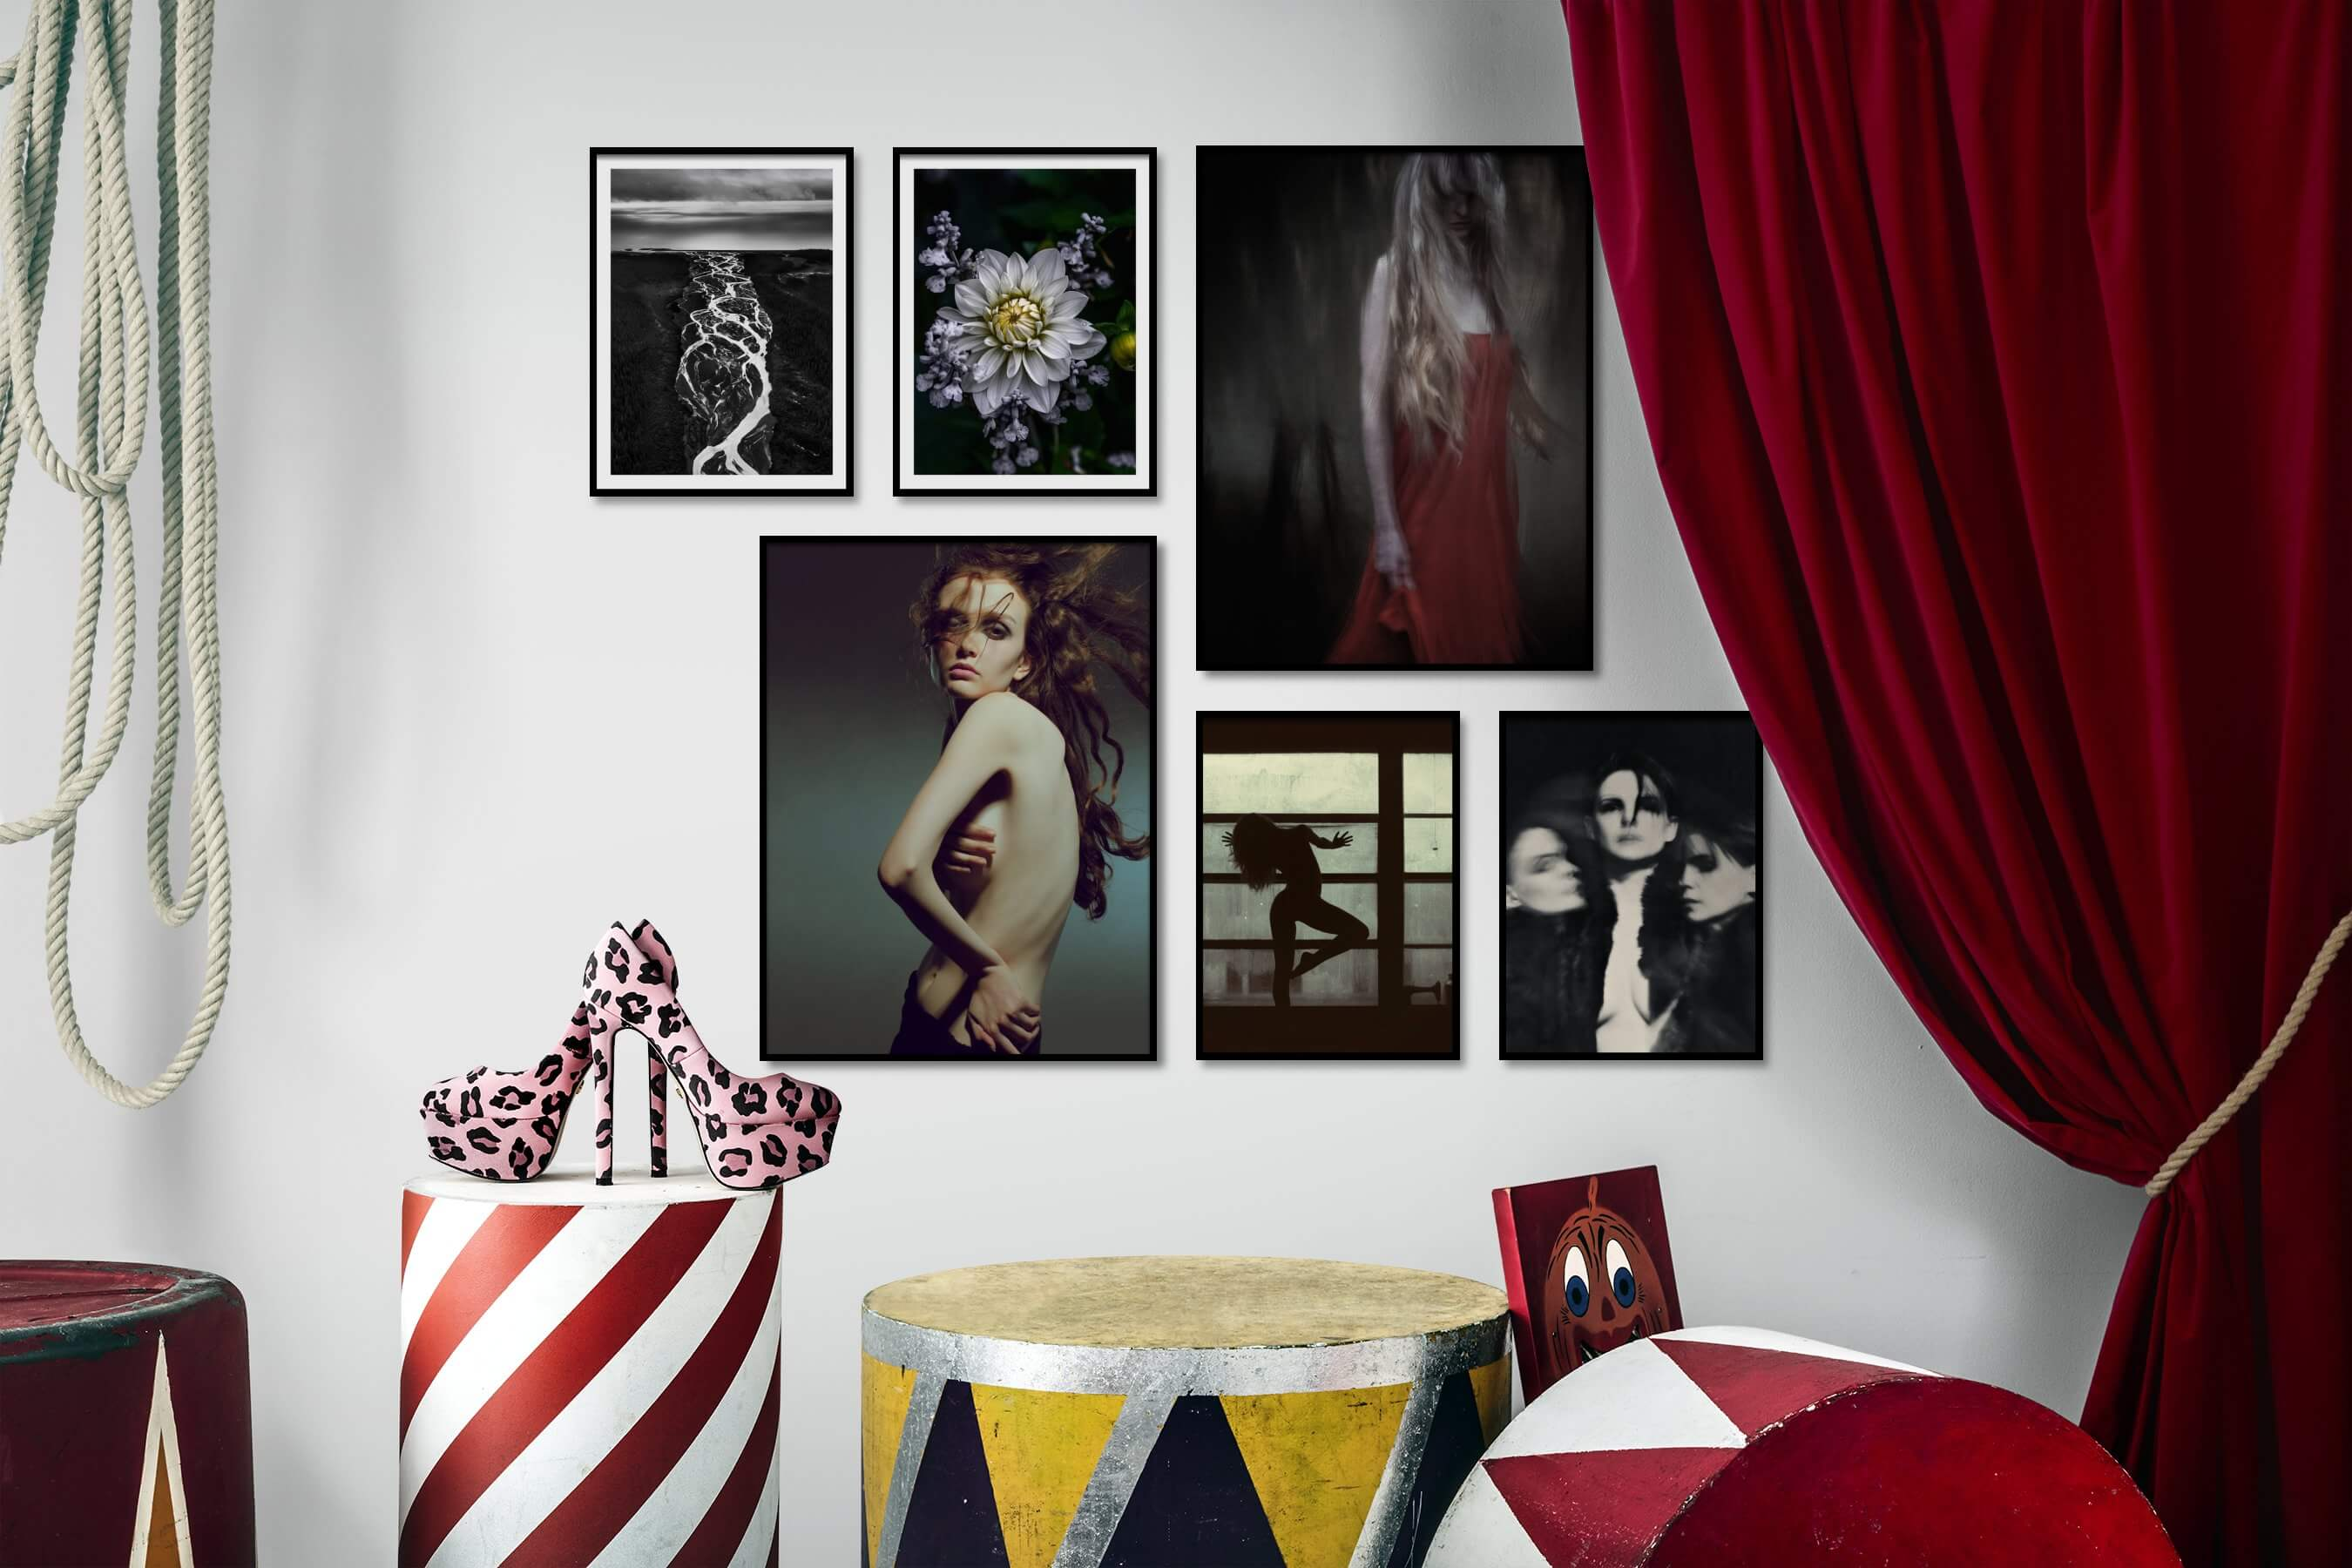 Gallery wall idea with six framed pictures arranged on a wall depicting Black & White, Nature, Flowers & Plants, Fashion & Beauty, For the Moderate, and Artsy